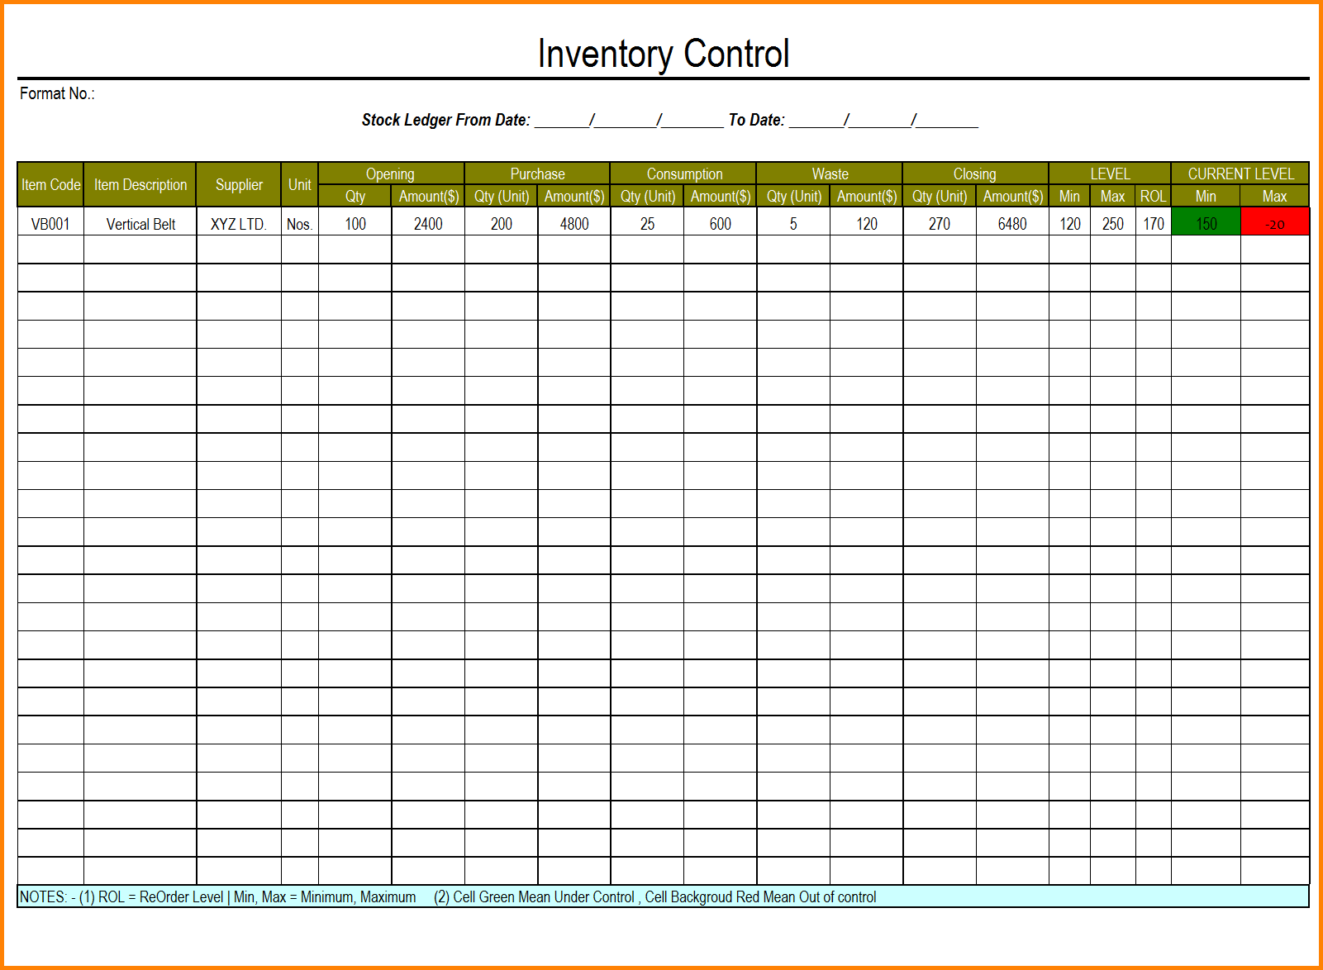 How To Manage Inventory With Excel Free Inventory Templates Excel Inventory Template With Formulas Excel Inventory Tracking Template Free Printable Inventory Sheets Inventory Control Template With Count Sheet Small Business Inventory Spreadsheet Template  Excel Inventory Template With Formulas 1 Inventory Spreadsheet Template Spreadsheet Templates for Busines